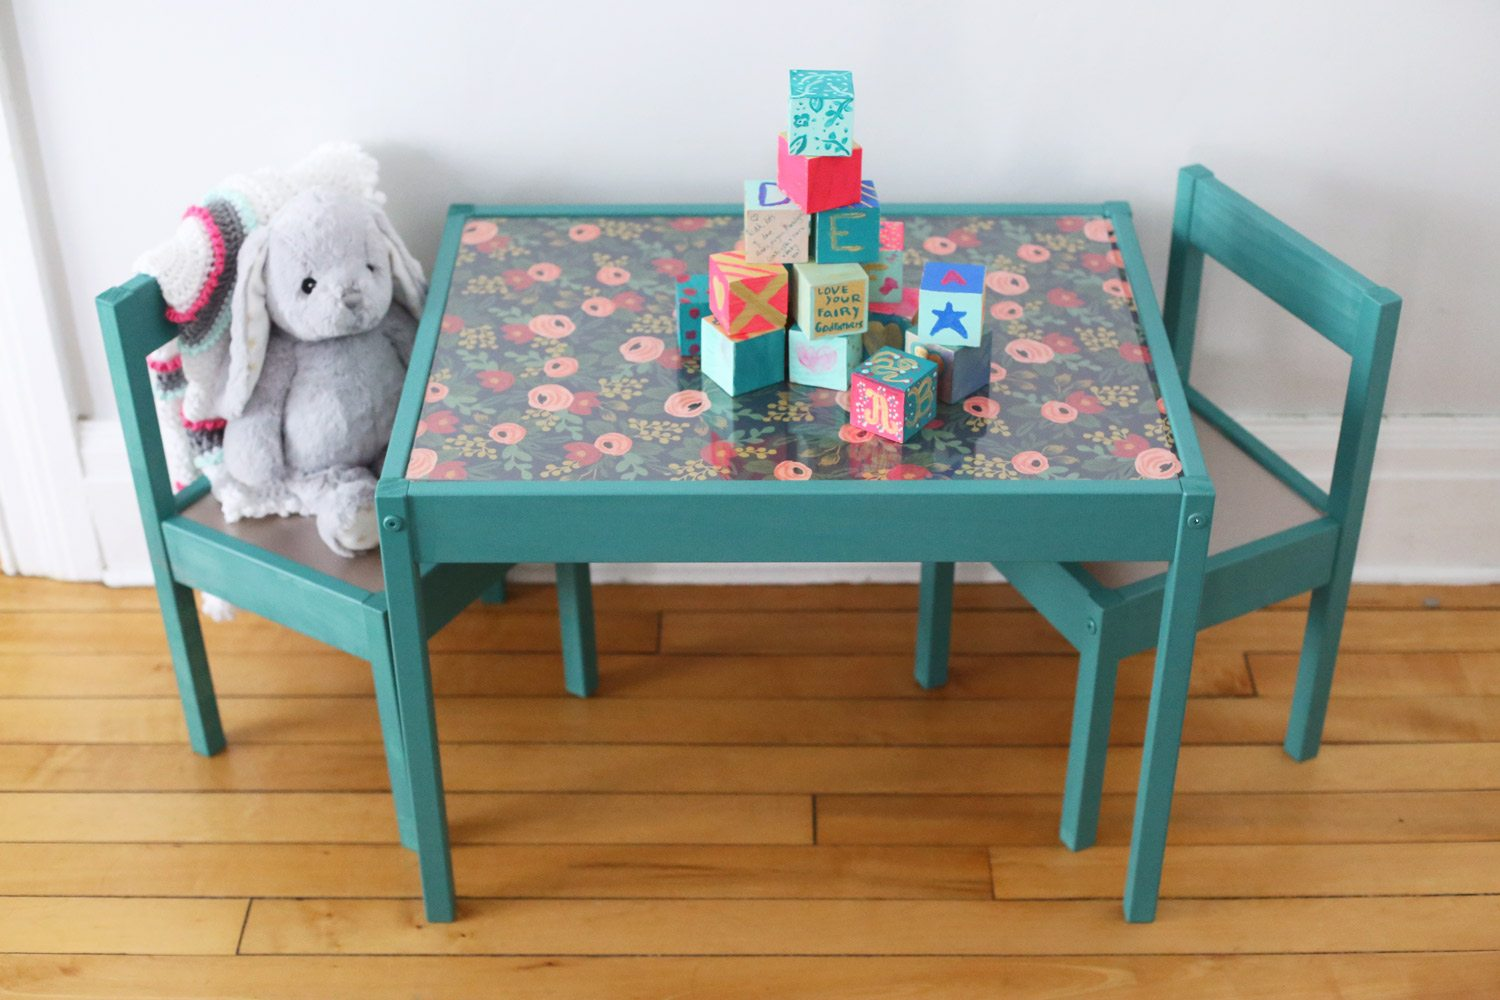 Kids Table And Chair Set The Result Is A Totally Custom Piece That Going To Look Perfect With Modern Yet Whimsical Vibe I M For In Our